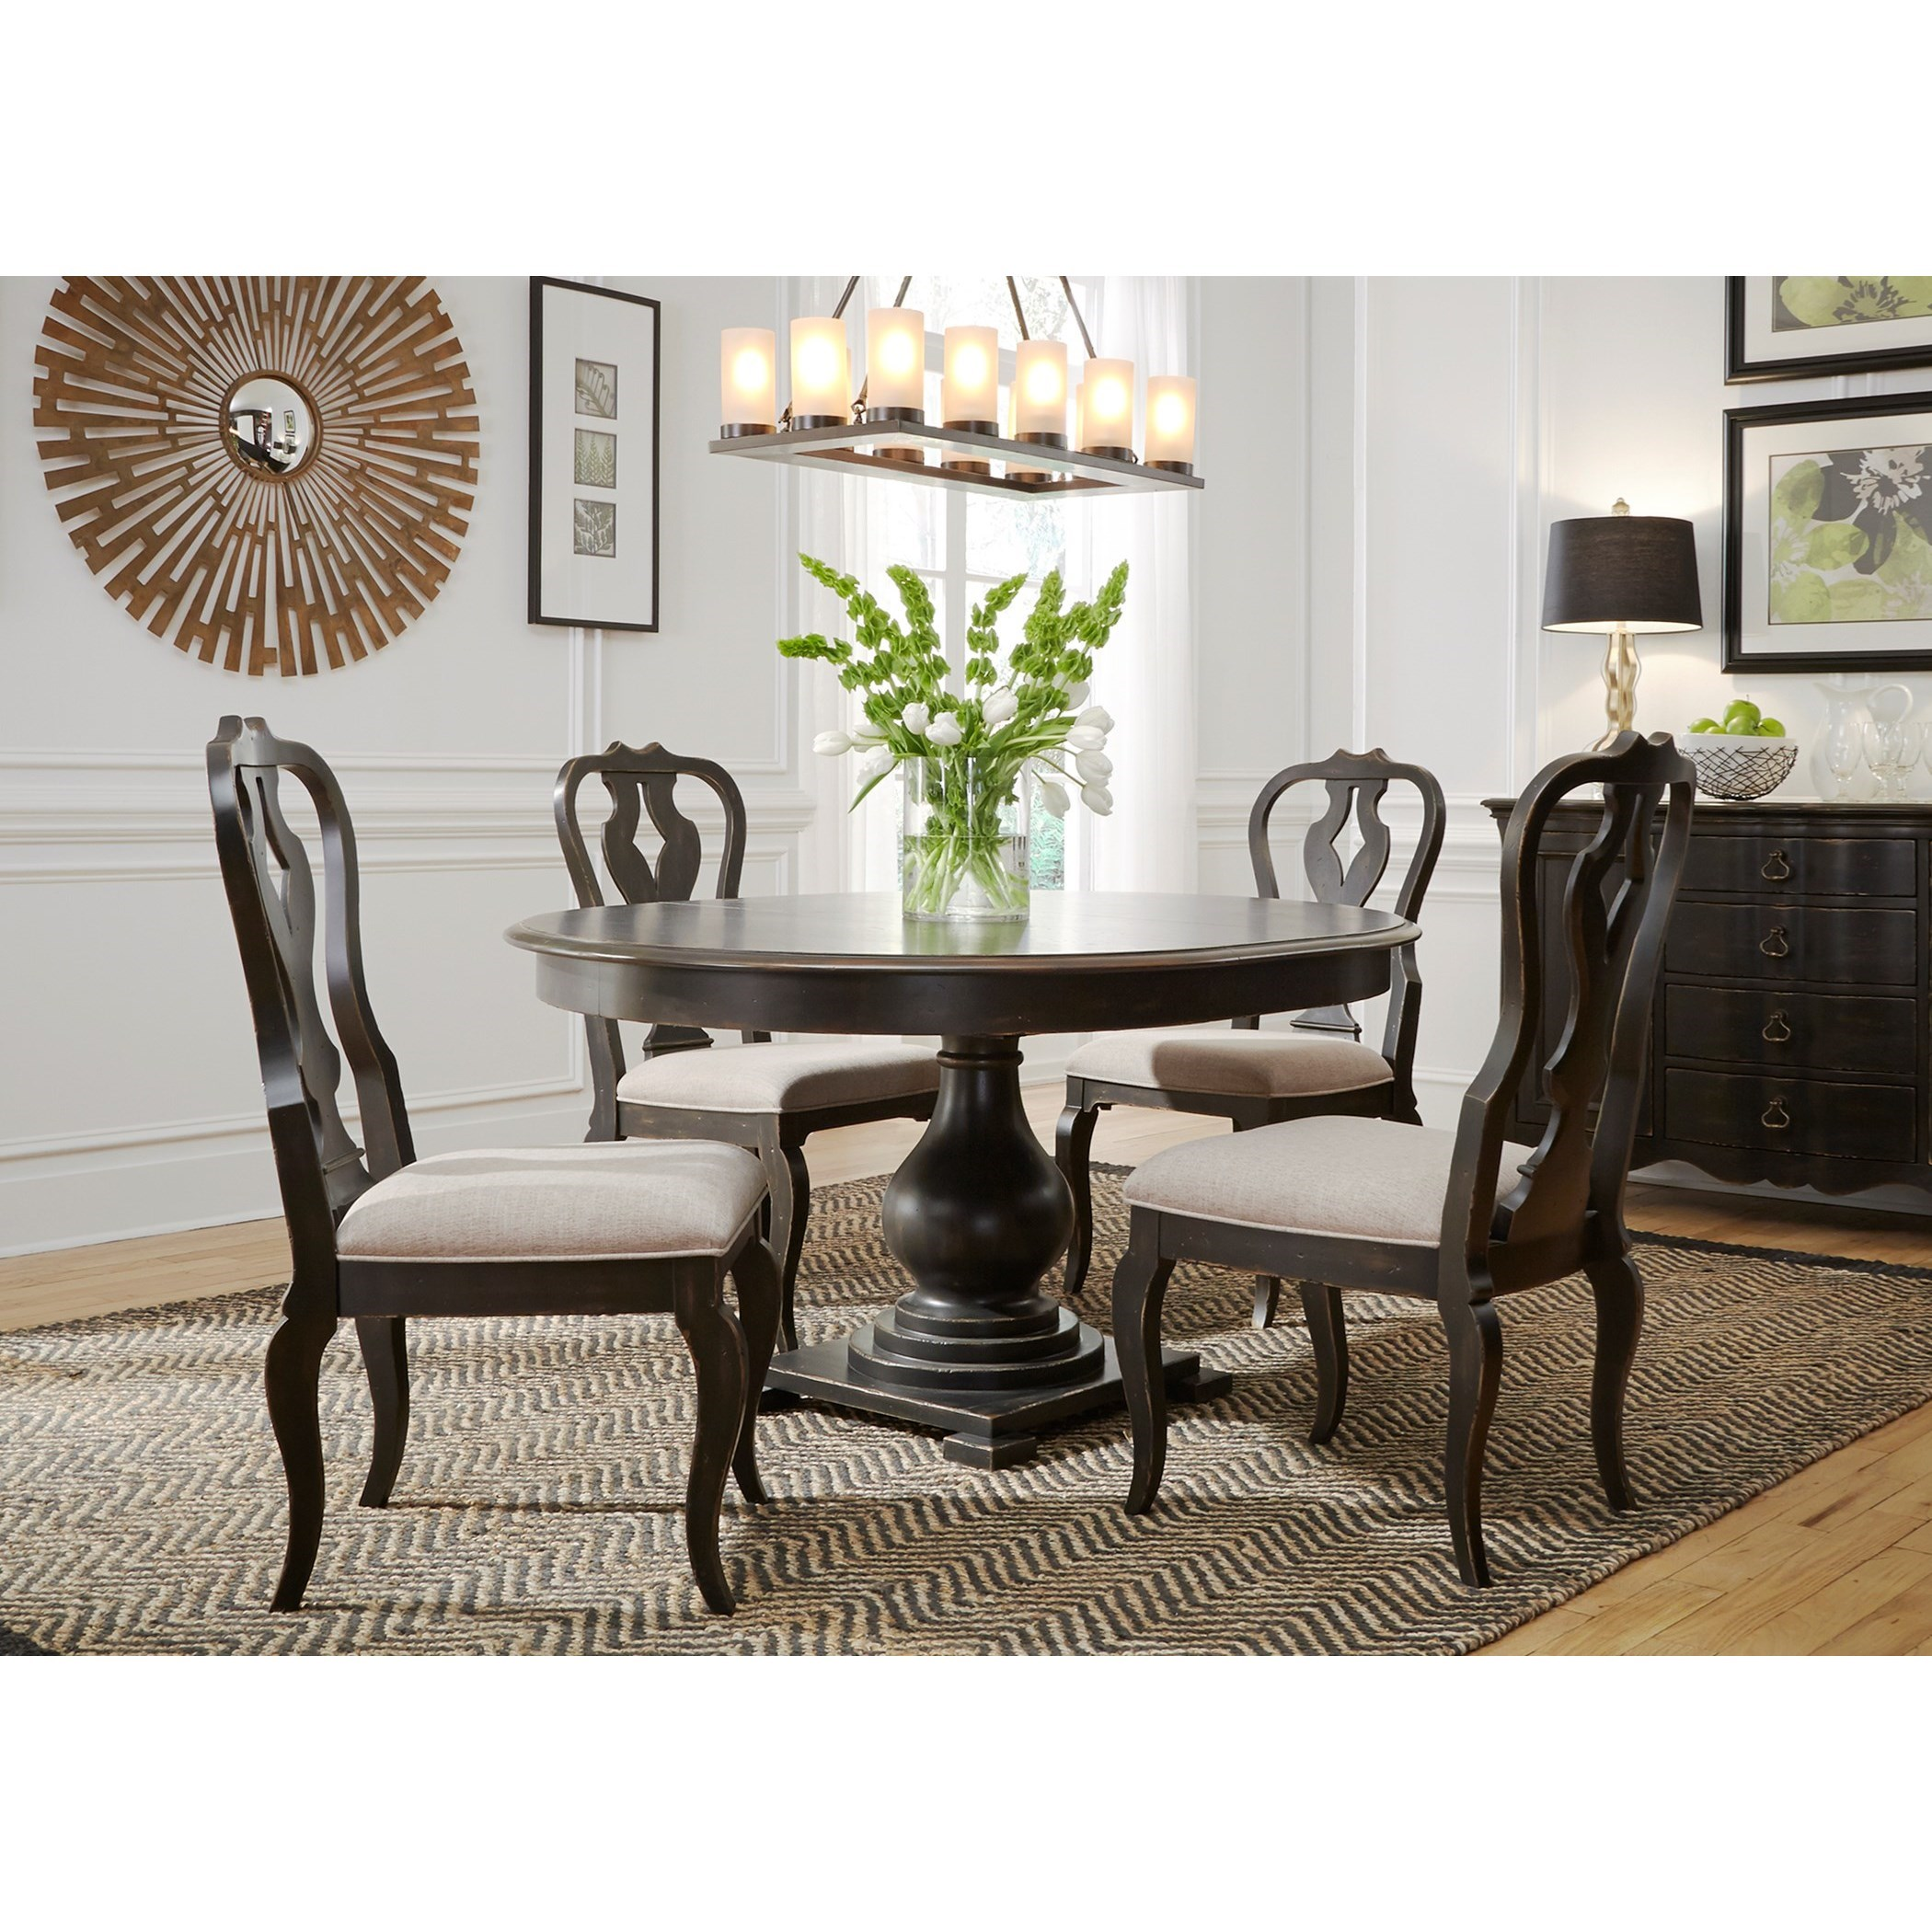 Chesapeake Round Pedestal Table and Chair Set by Liberty Furniture at Northeast Factory Direct